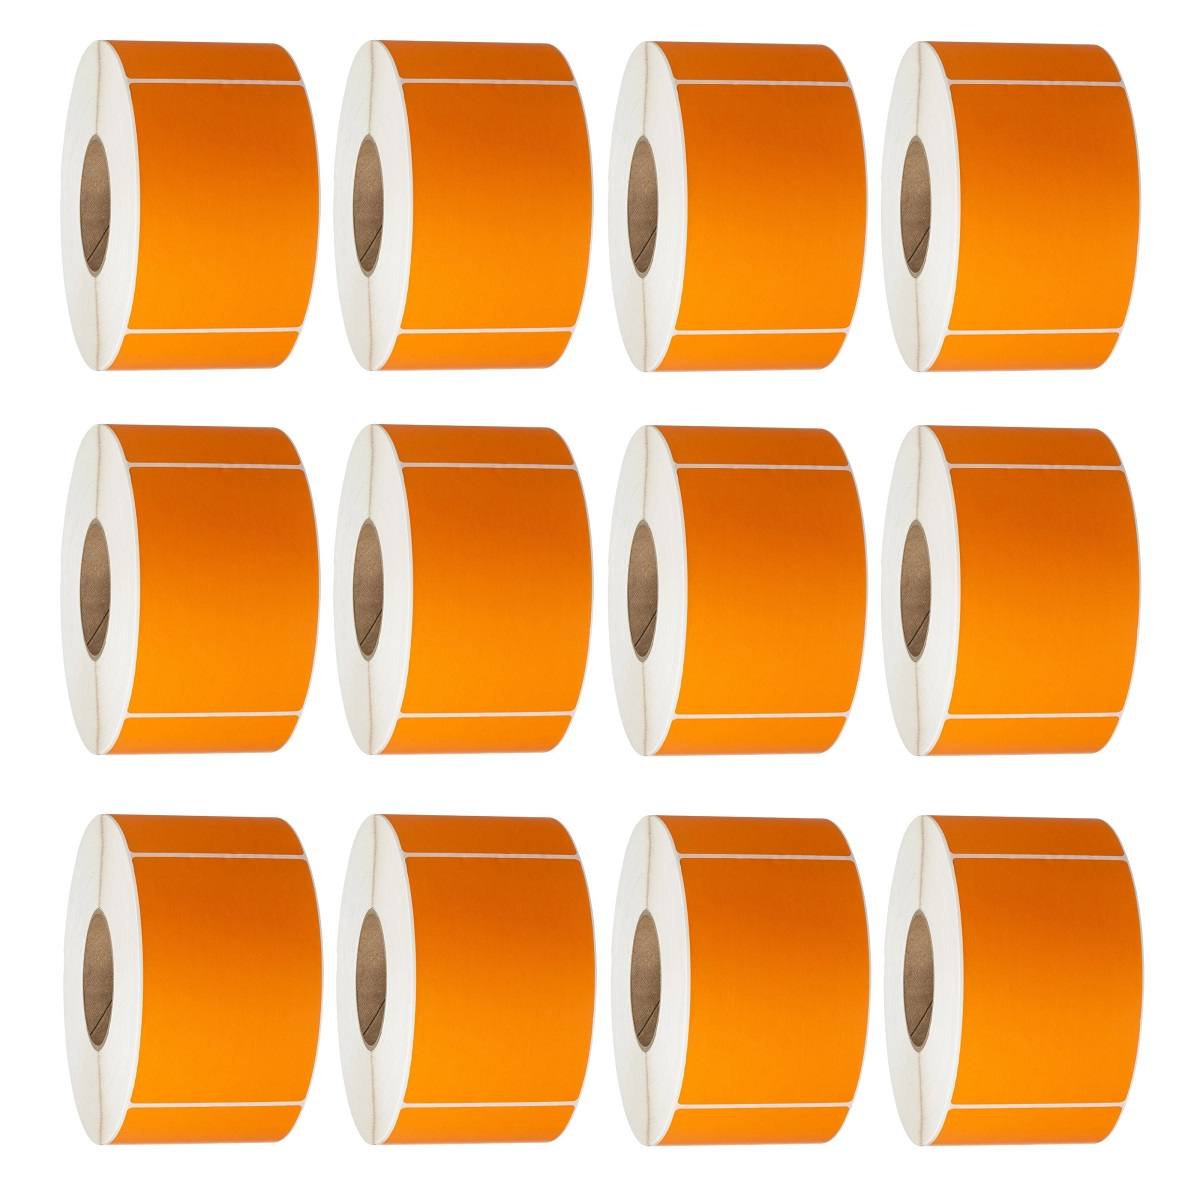 View 76X48 Thermal Transfer Labels 3000/Roll 76mm Core Orange - 12 Rolls